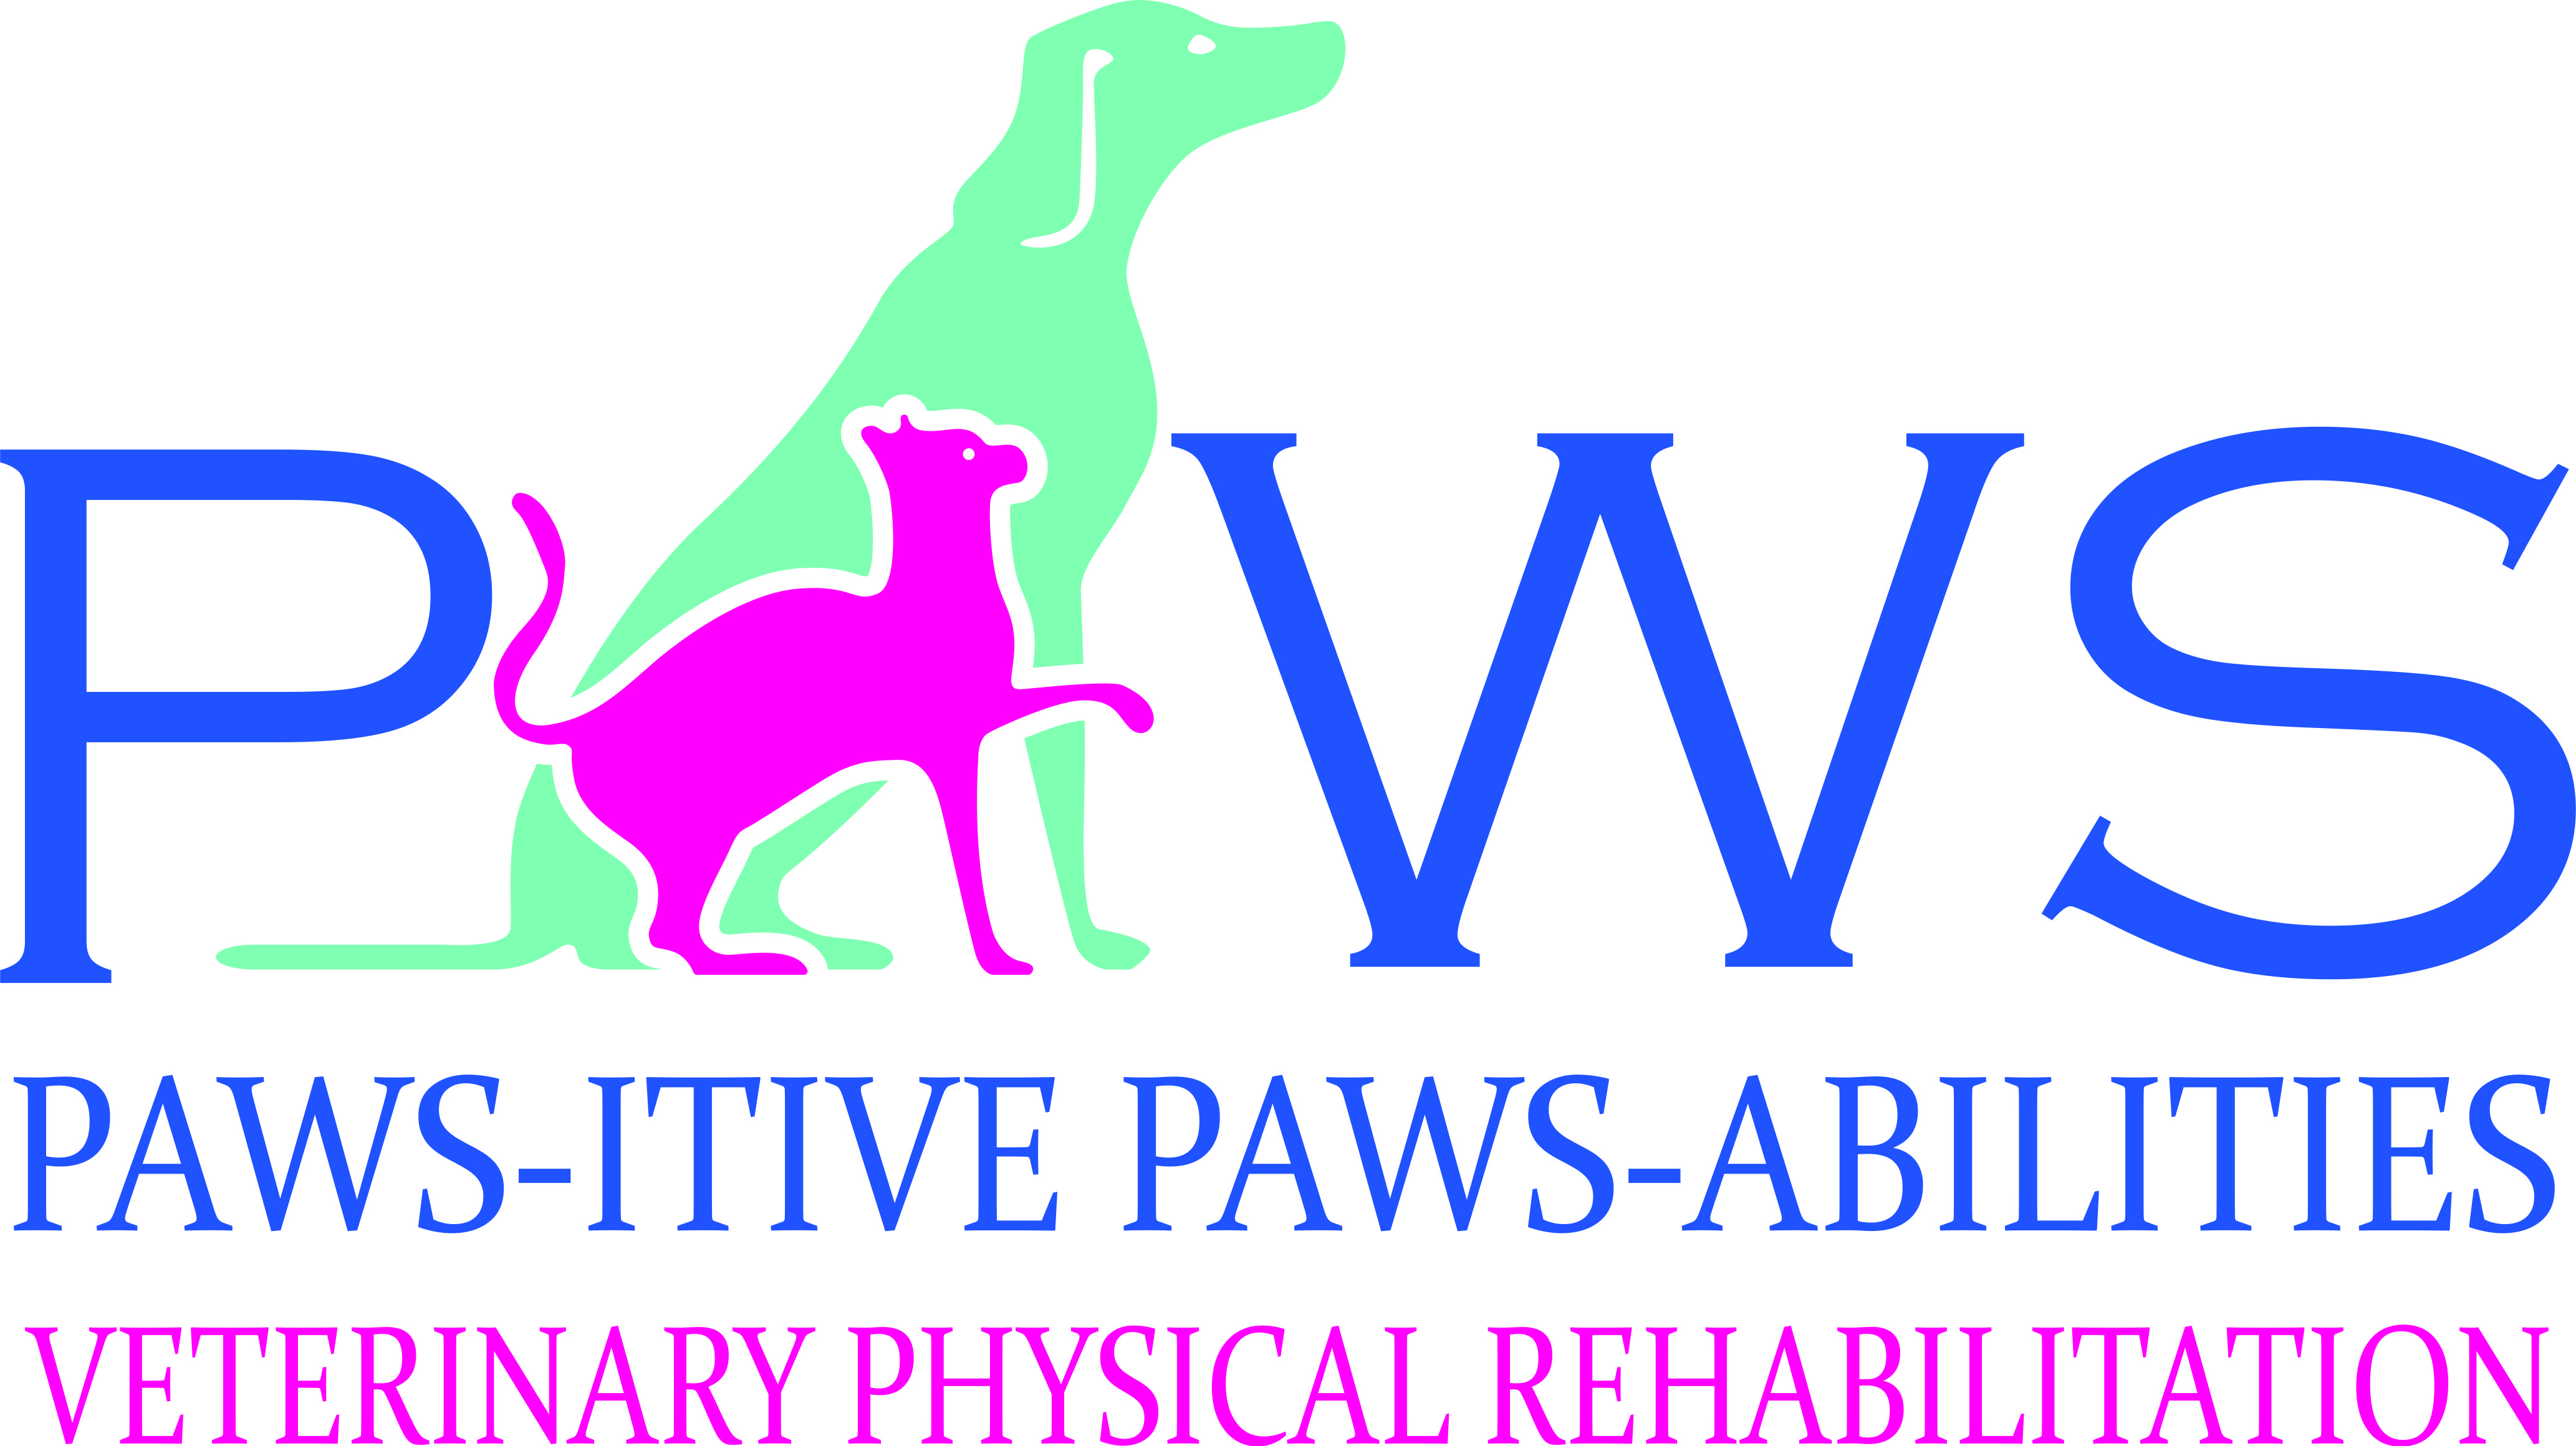 Paws-itive Paws-abilities logo